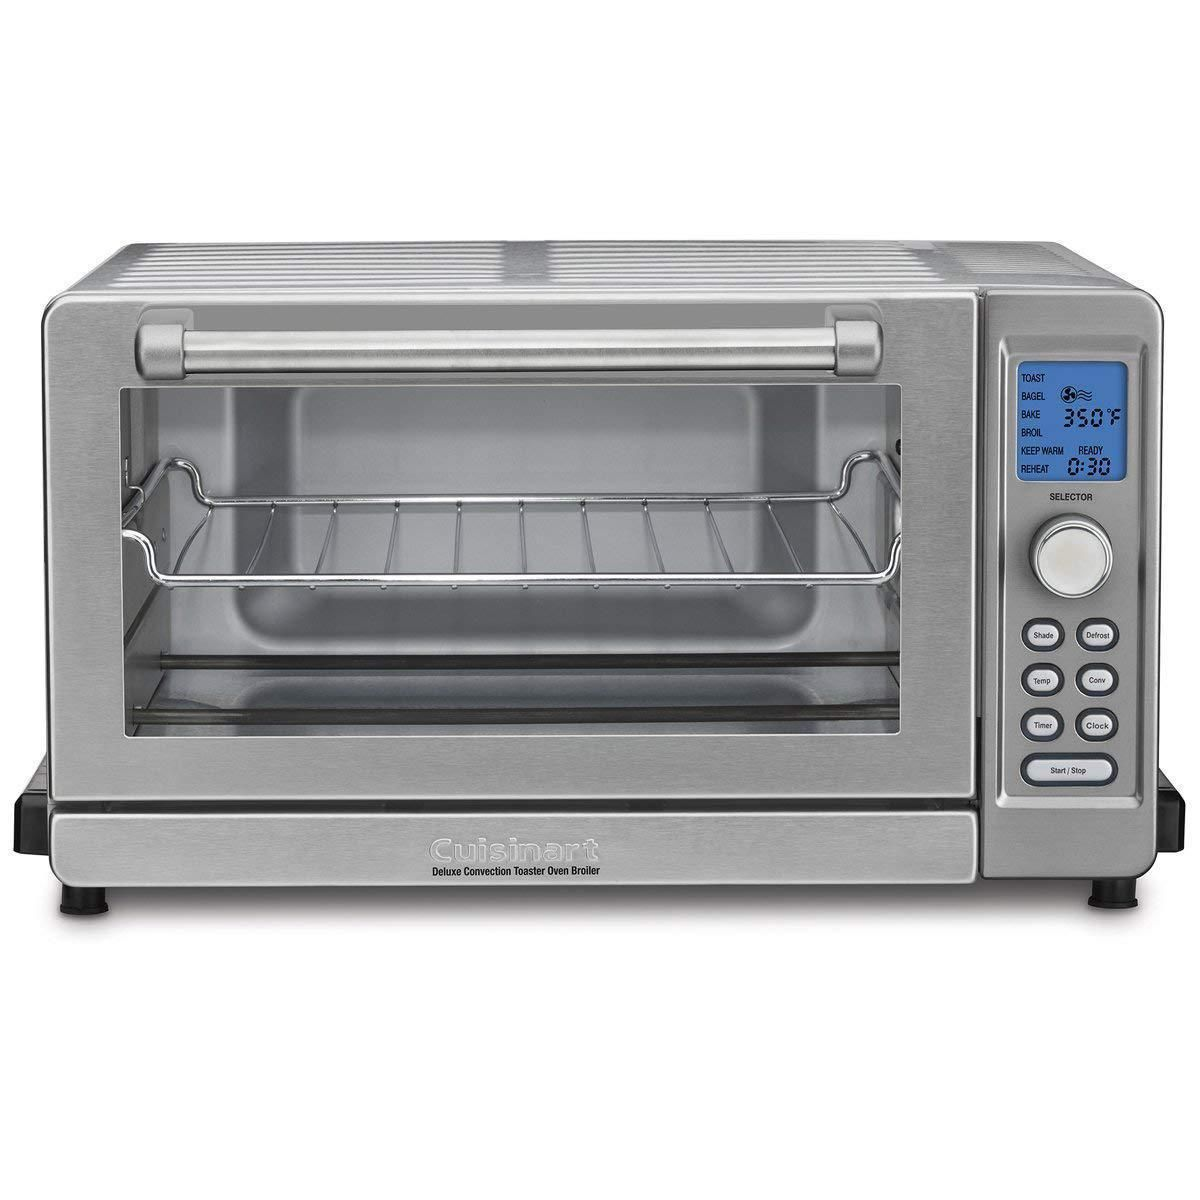 Cuisinart Tob 135 Deluxe Convection Toaster Oven Broiler Products In 2019 Countertop Oven Toaster Oven